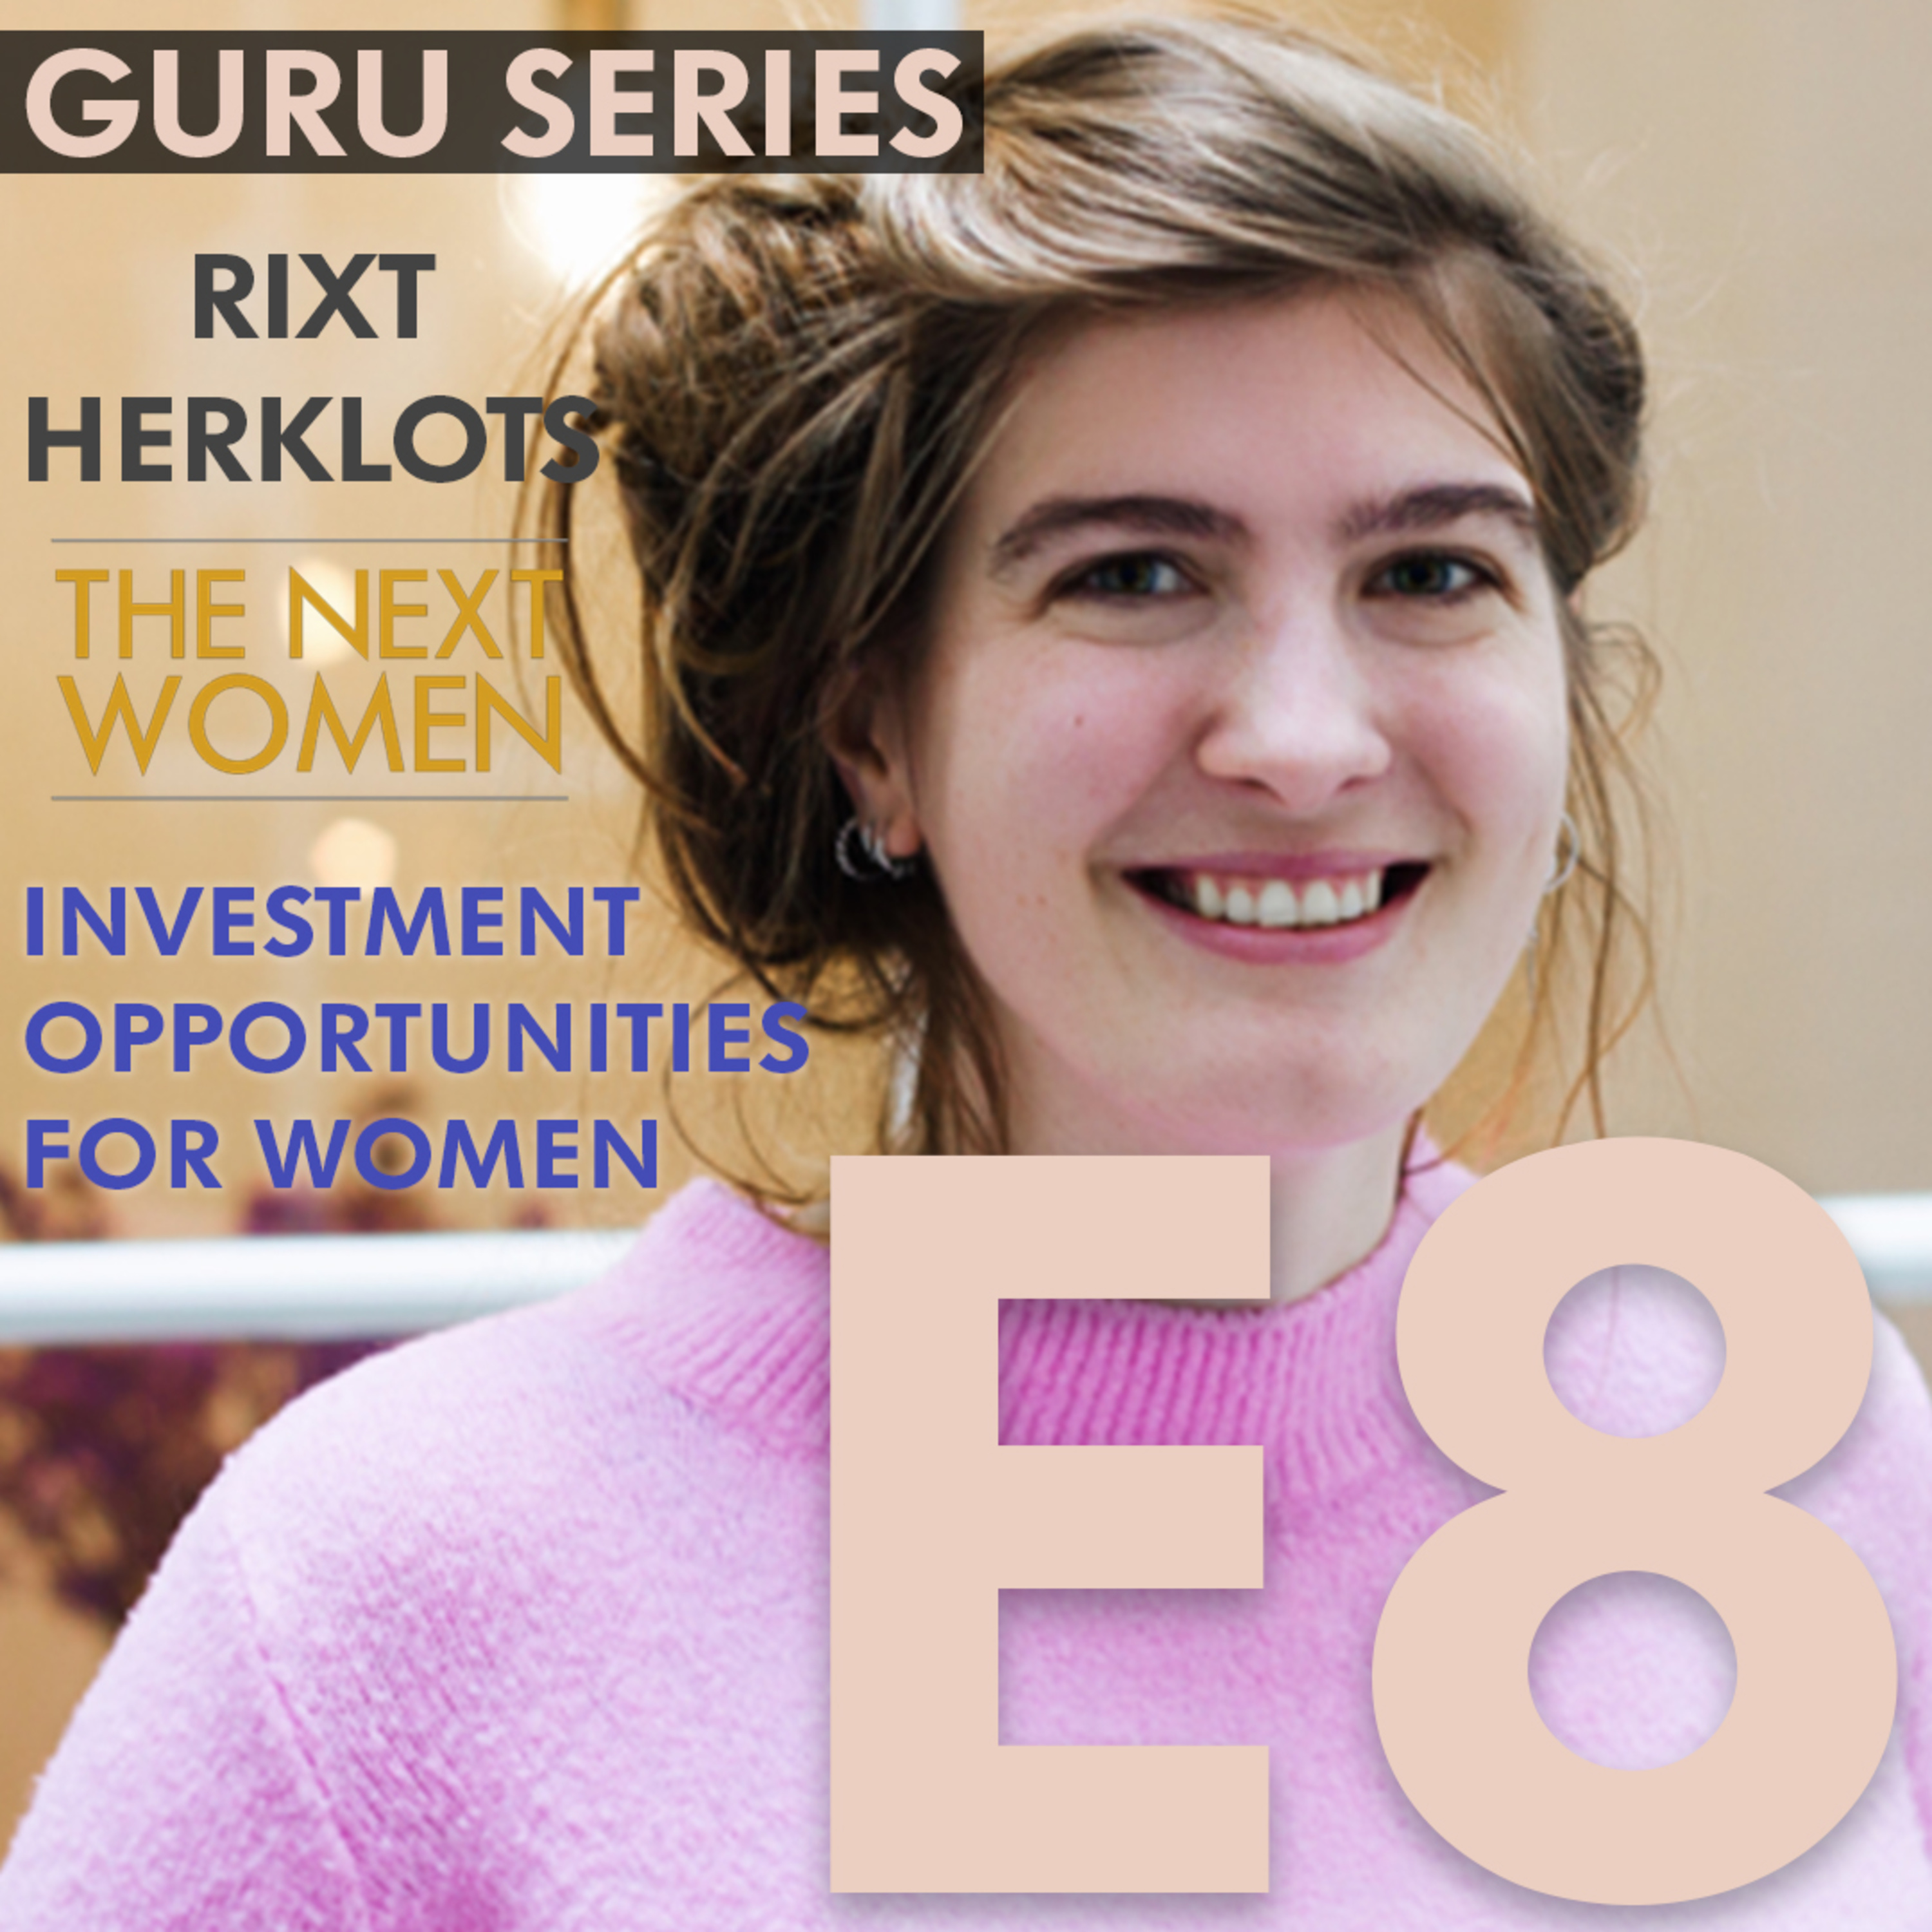 Investment Opportunities for Women: How to Invest and to Get Funding - Challenges & Tips